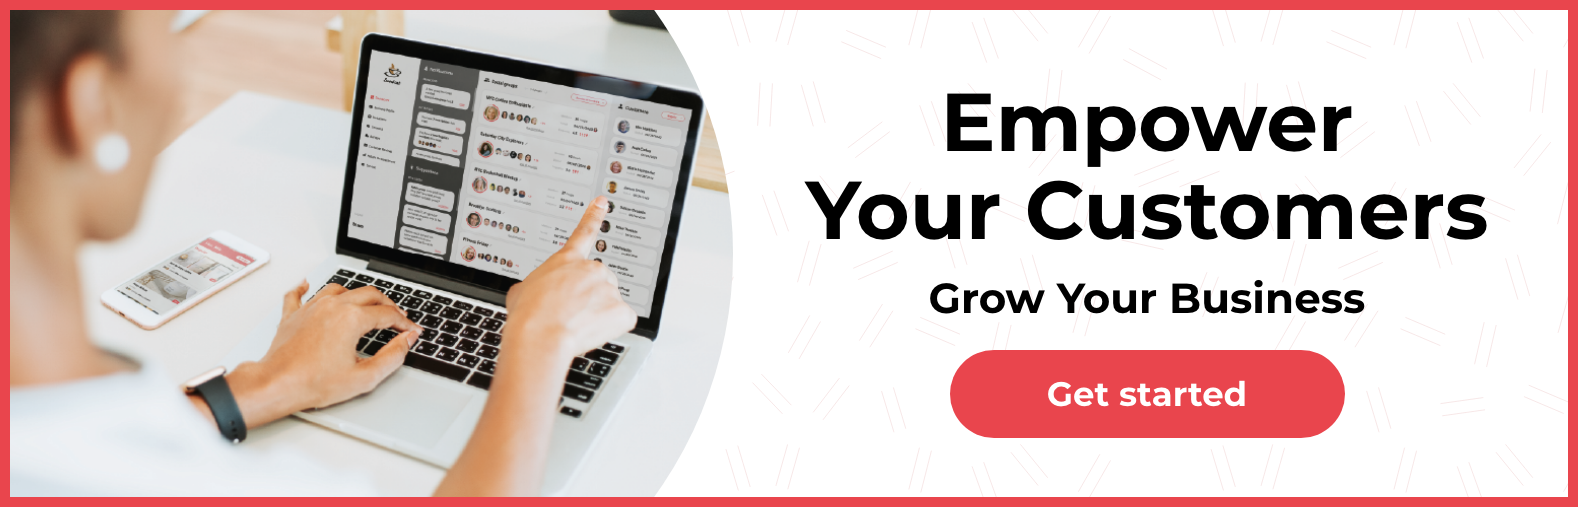 Empower Your customers, grow your business